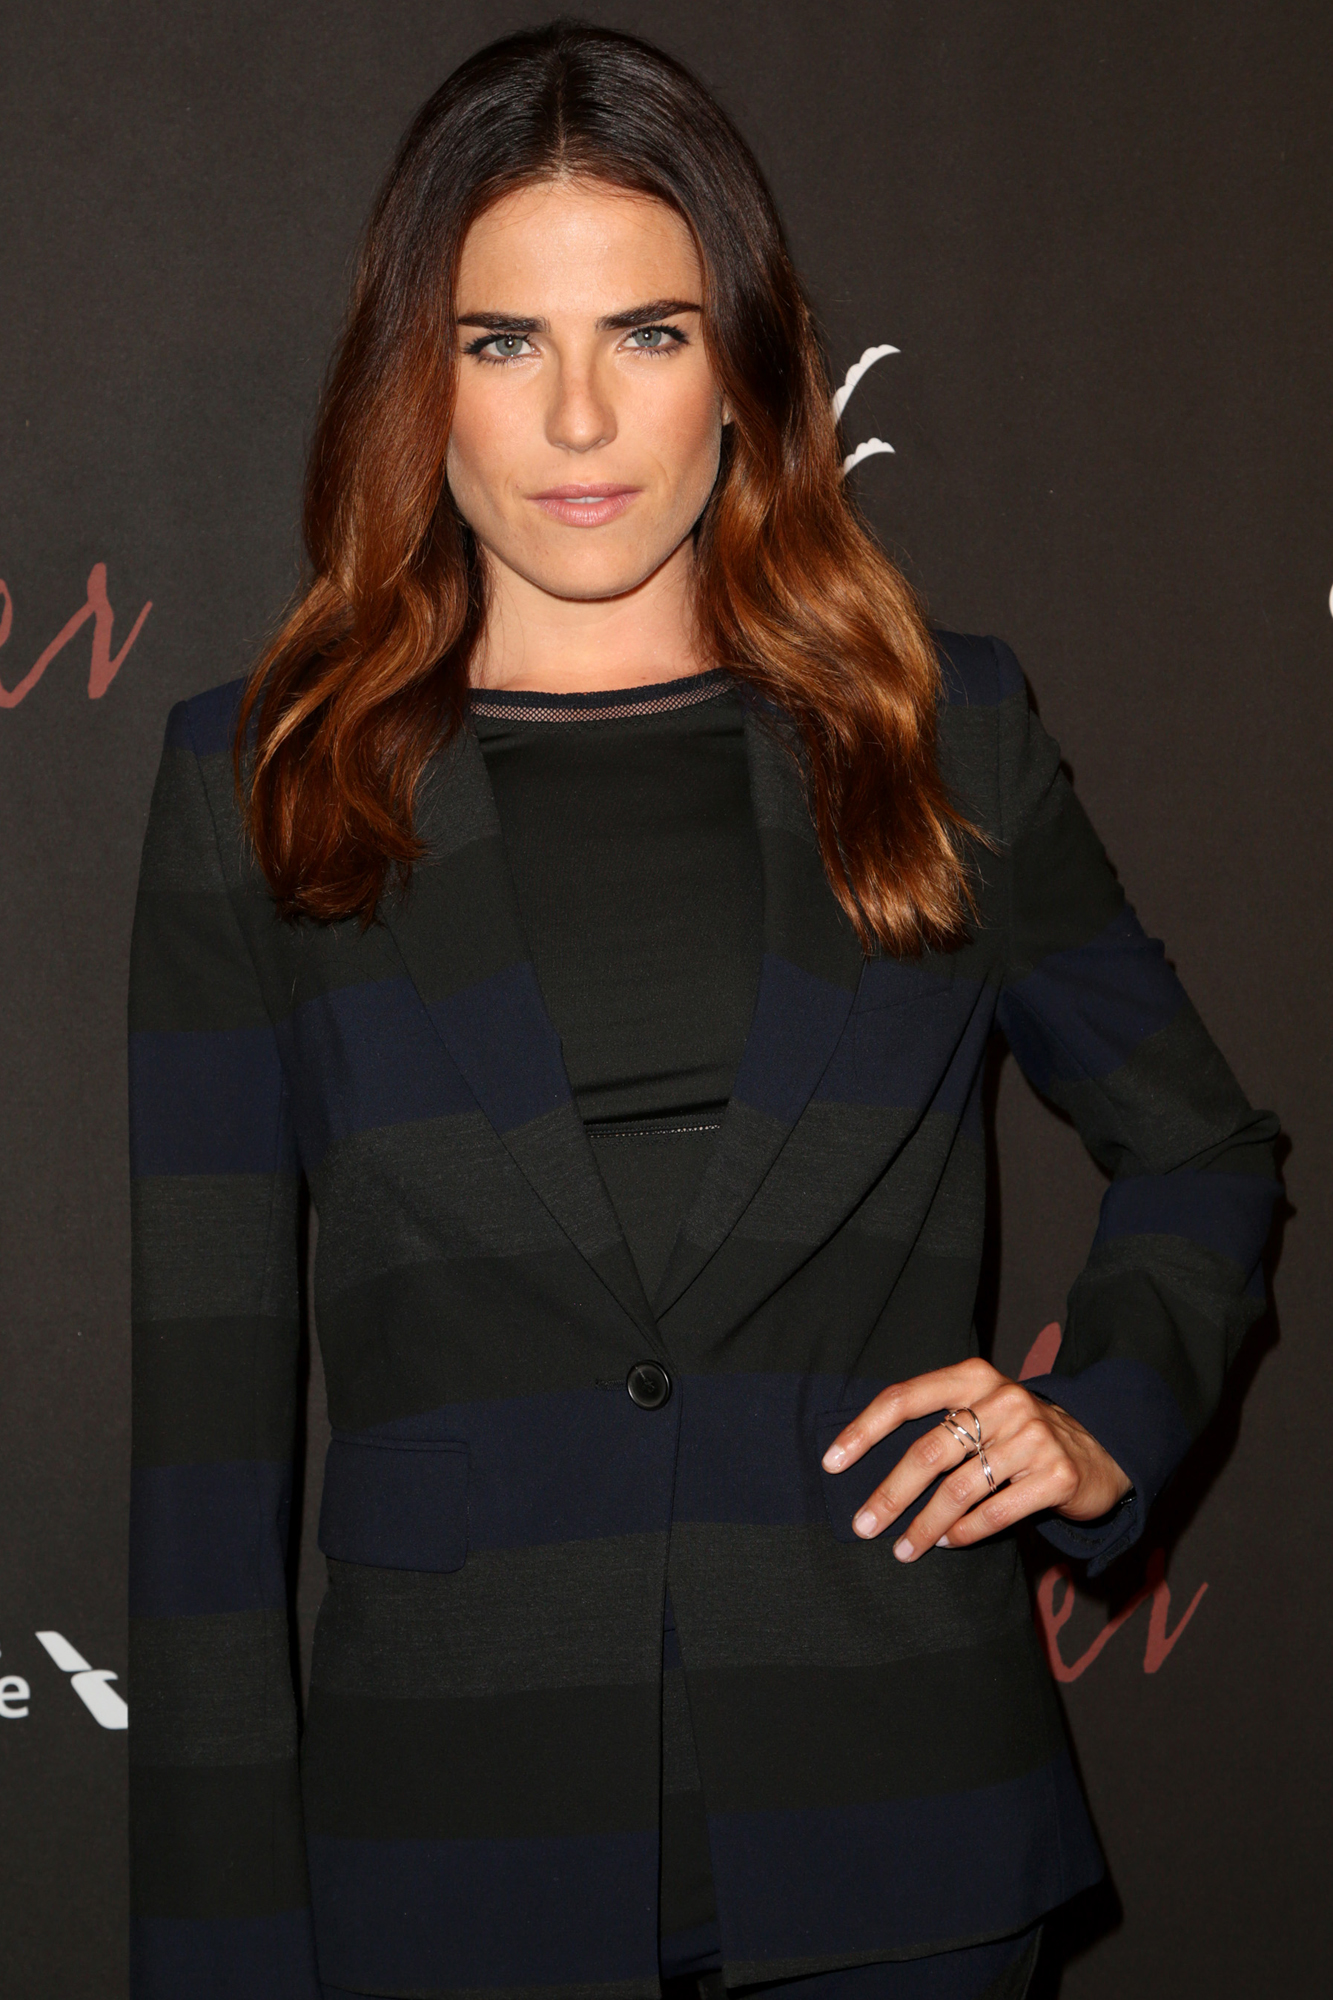 'How To Get Away With Murder' TV series premiere, Los Angeles, USA - 20 Sep 2016